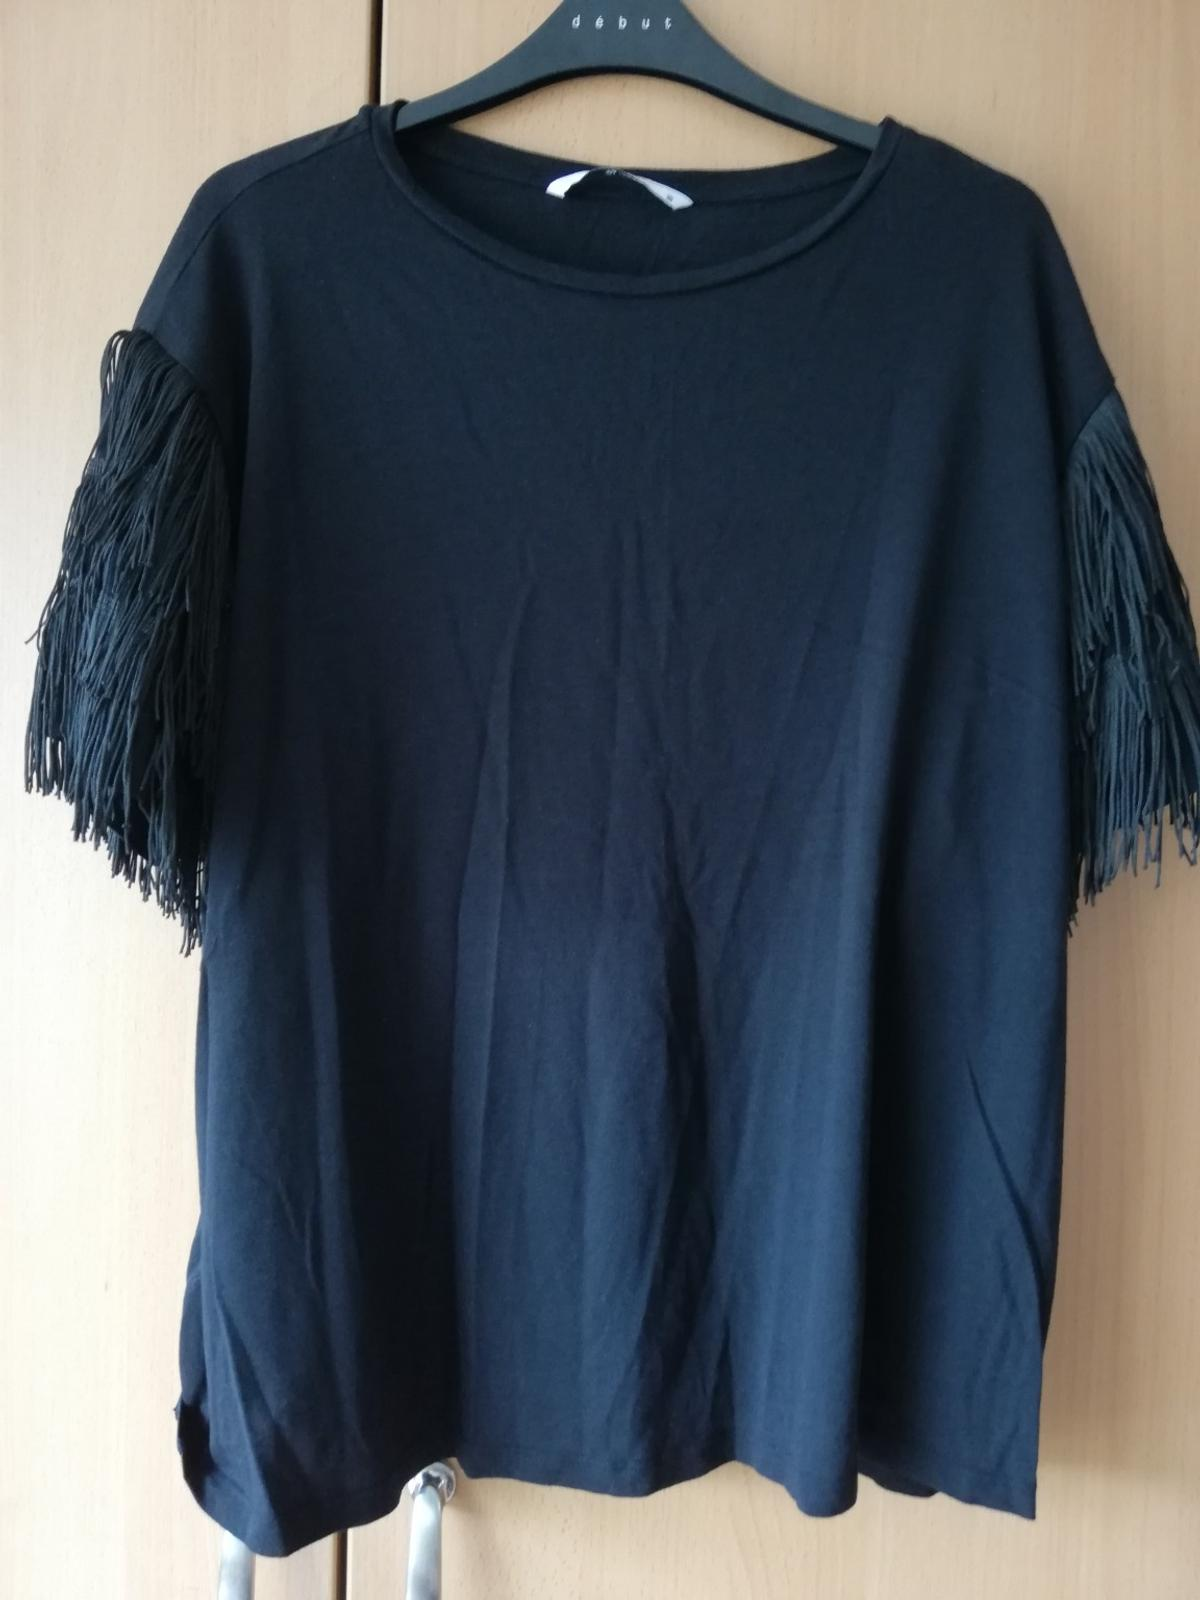 Lovely fringe detail on sleeves in excellent condition  Can post and combine postage on several items  Please look at my other items thanks